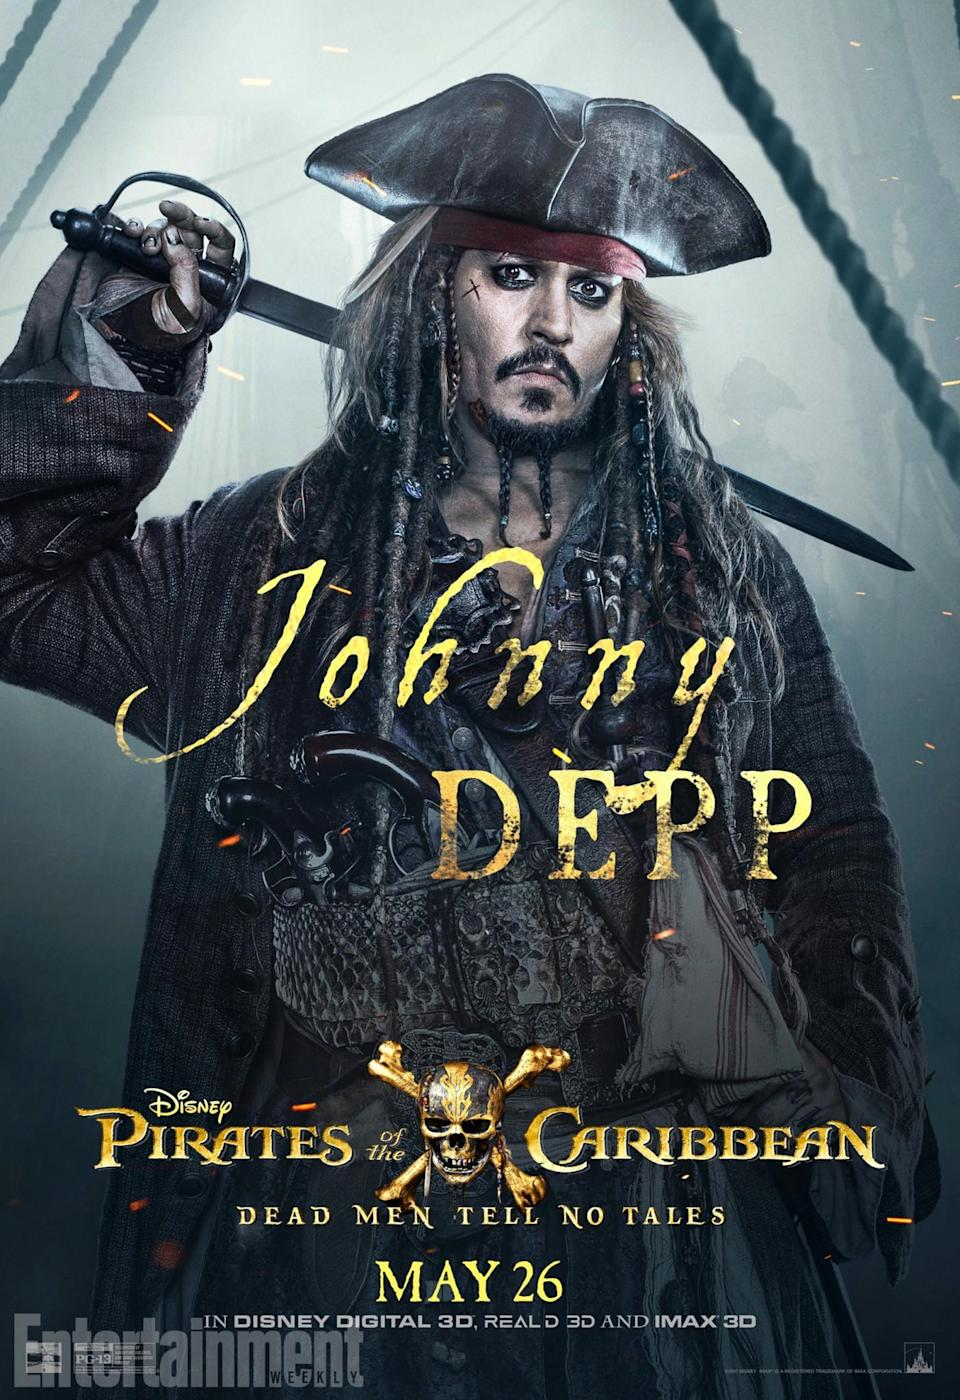 <p>He's back – Johnny Depp stars as Captain Jack Sparrow… and he's off on an epic adventure to stop an age-old nemesis. Once again, he's after an old, seafaring artefact to save the day. But can he send Captain Salazar and his ghostly crew back to where they belong?<br>(Credit: Disney) </p>